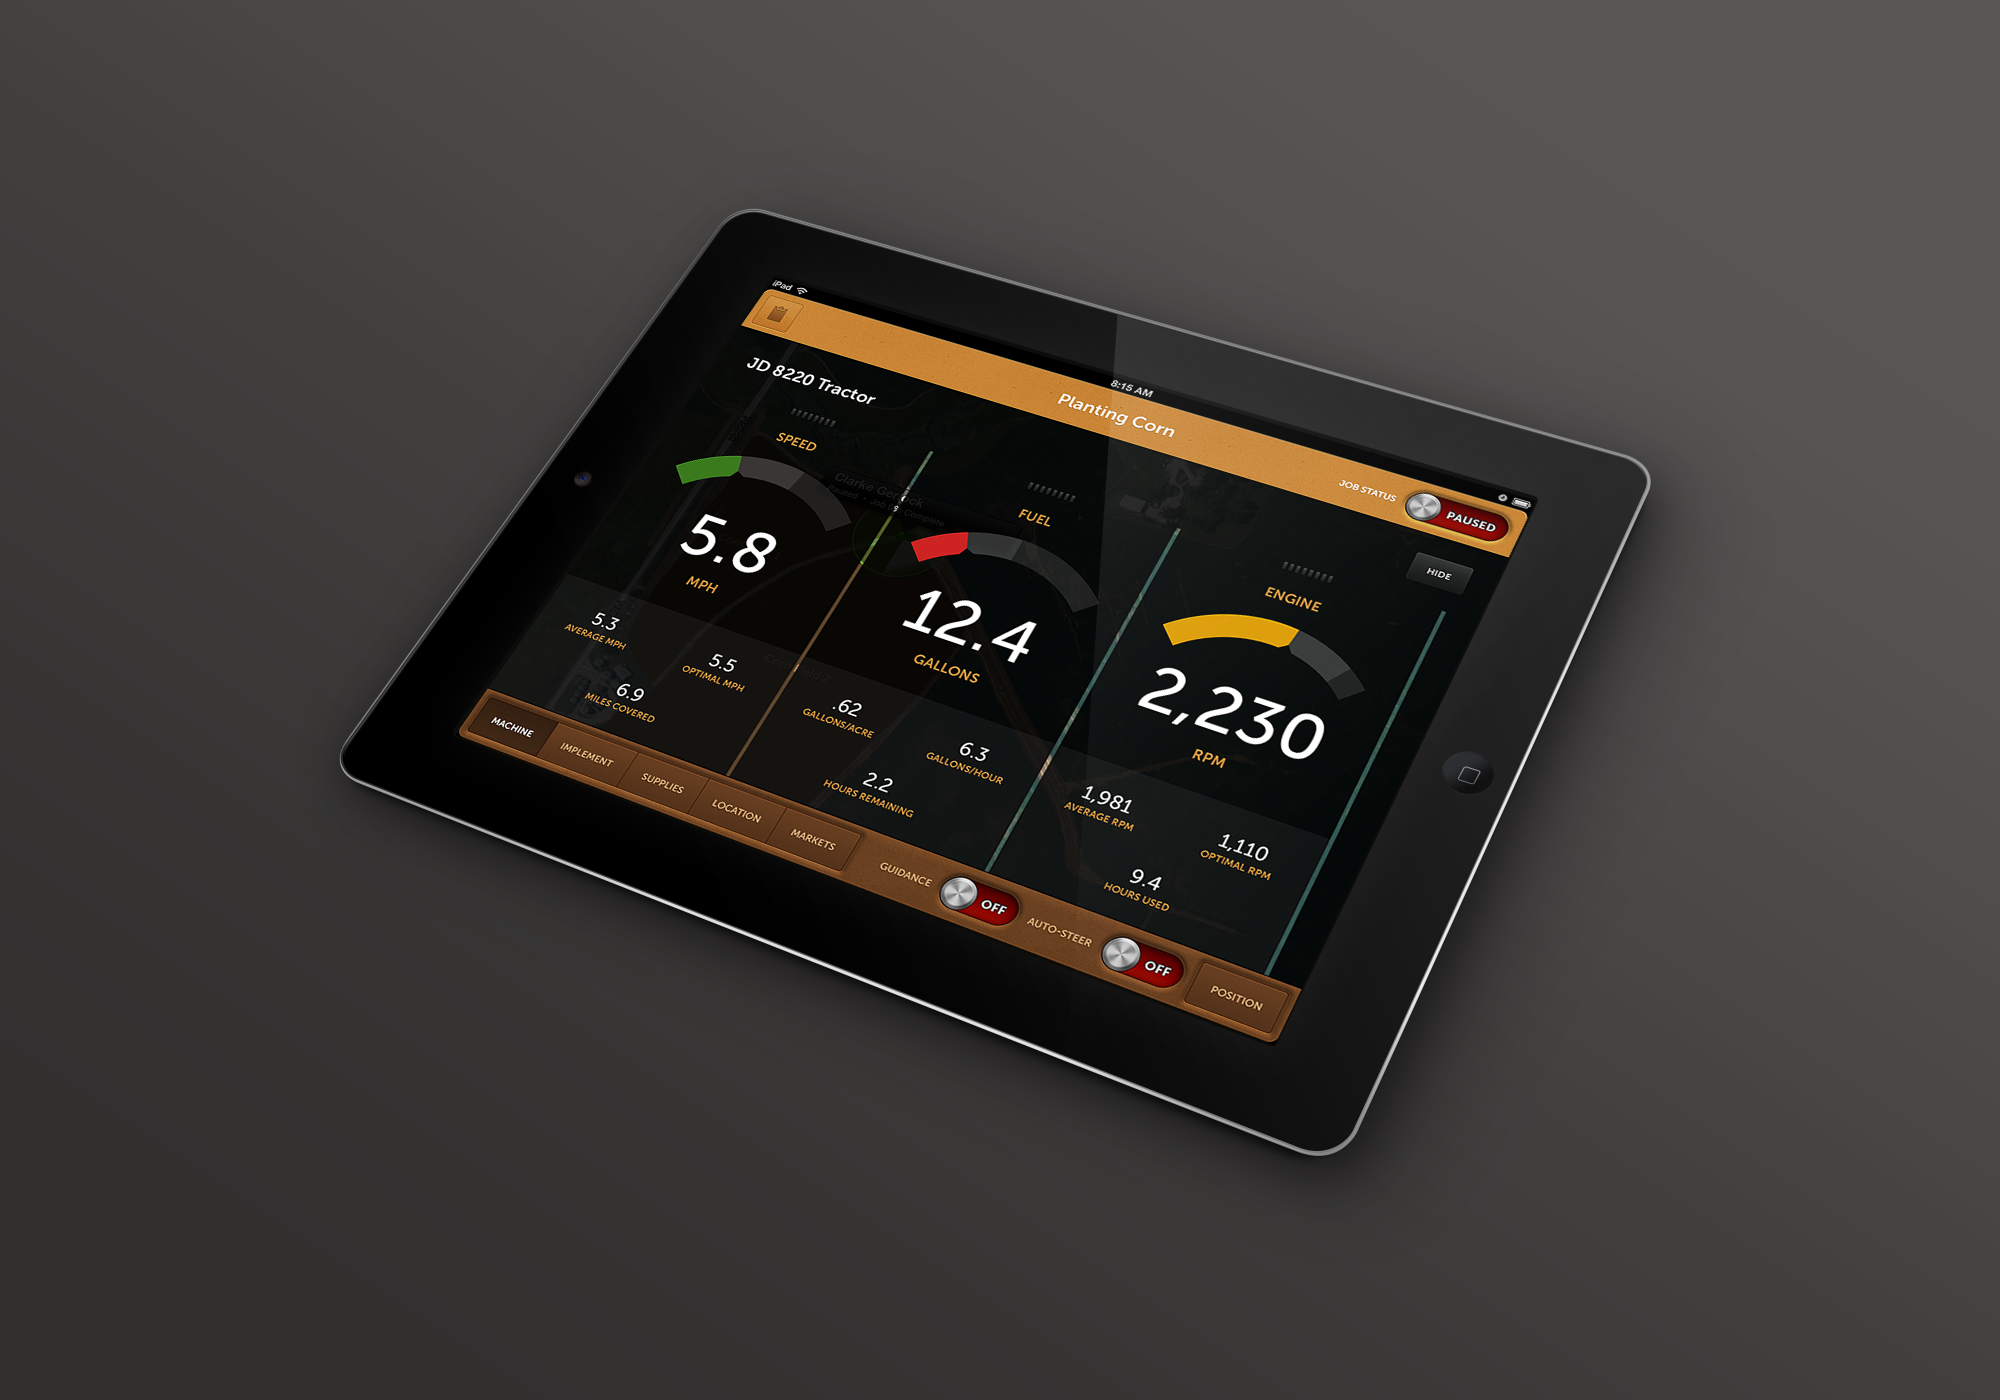 This concept was designed to represent how machine & implement controls could be handled on a consumer tablet.